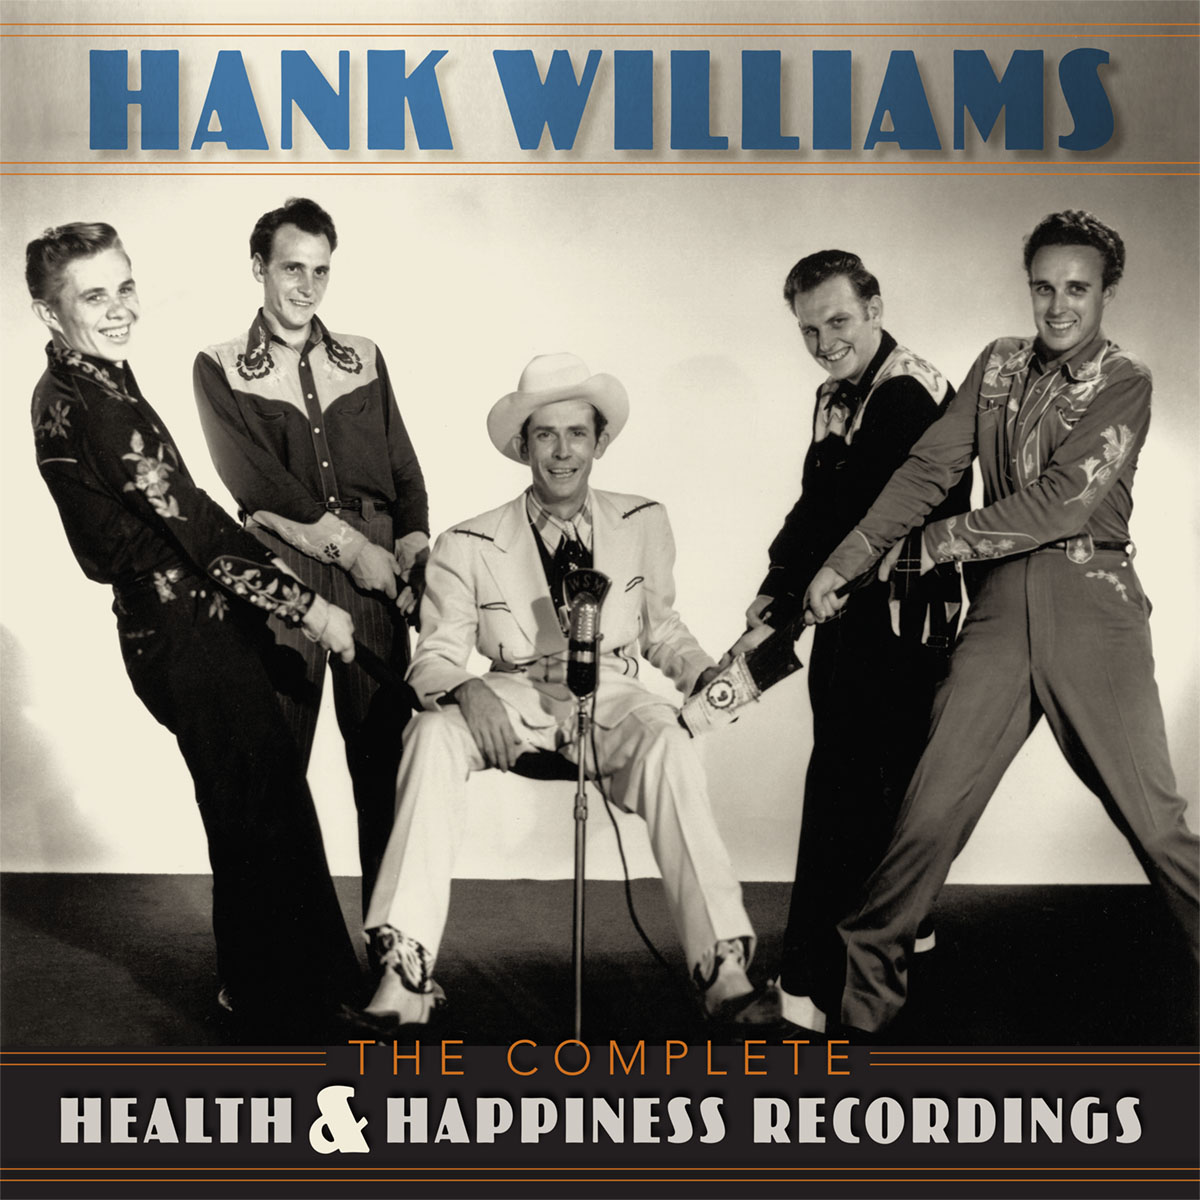 Hank Williams - The Complete Health & Happiness Recordings  Release Date: June 14, 2019 Label: BMG  SERVICE: Mastering, Restoration NUMBER OF DISCS: 2, 3 GENRE: Country FORMAT: CD, LP